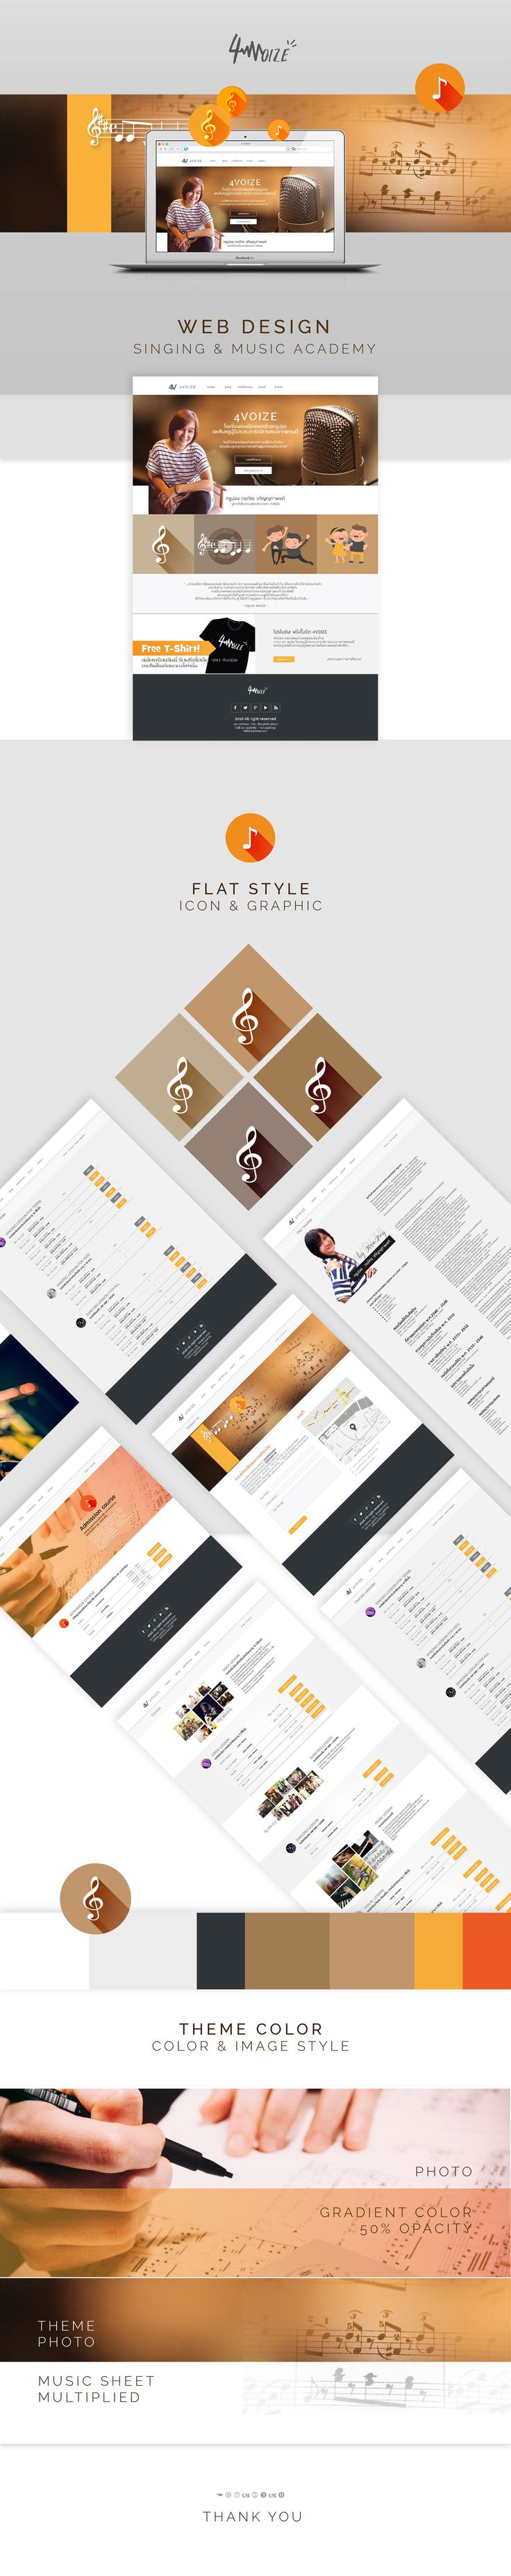 "Check out my @Behance project: ""4Voize -Web design"" https://www.behance.net/gallery/53531653/4Voize-Web-design"